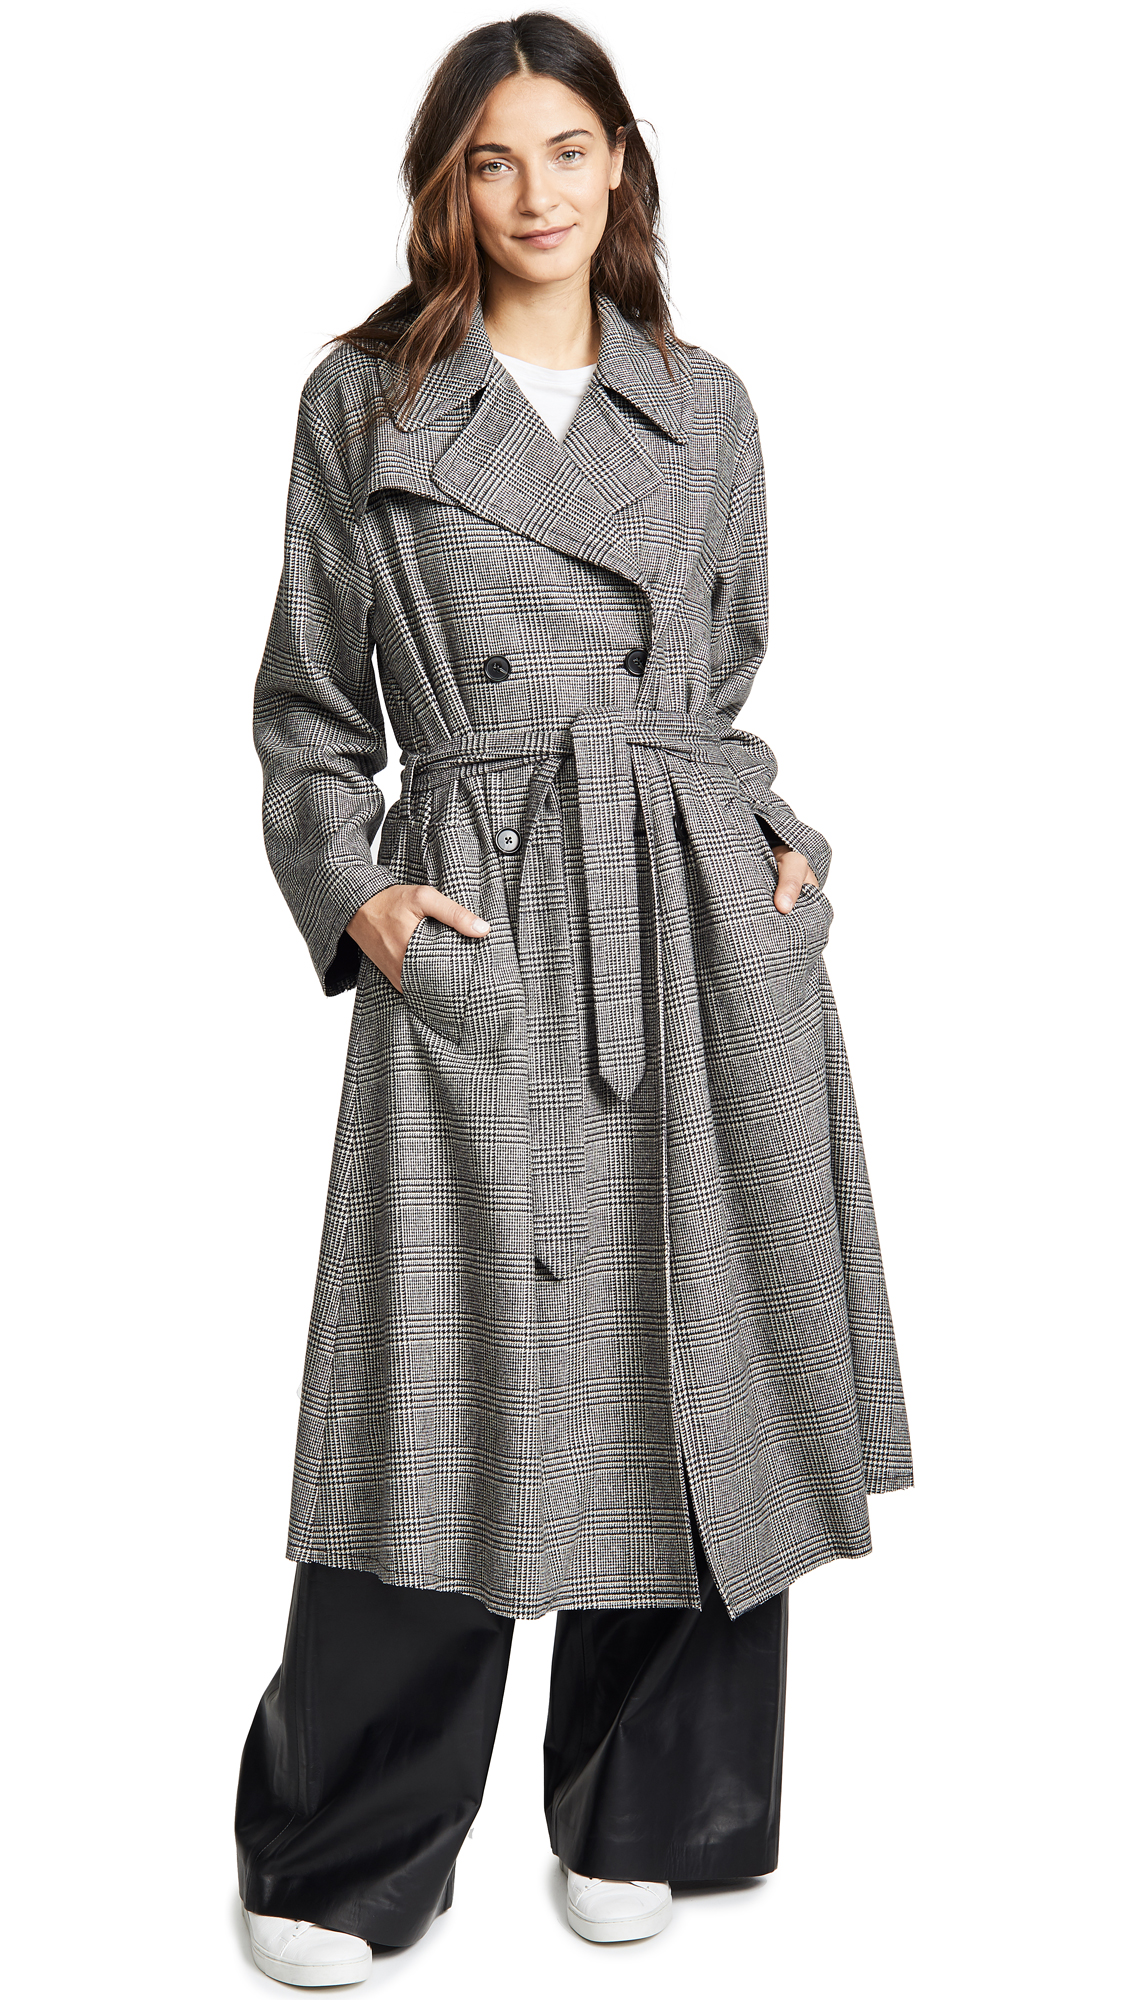 Nili Lotan Topher Coat In Black/White